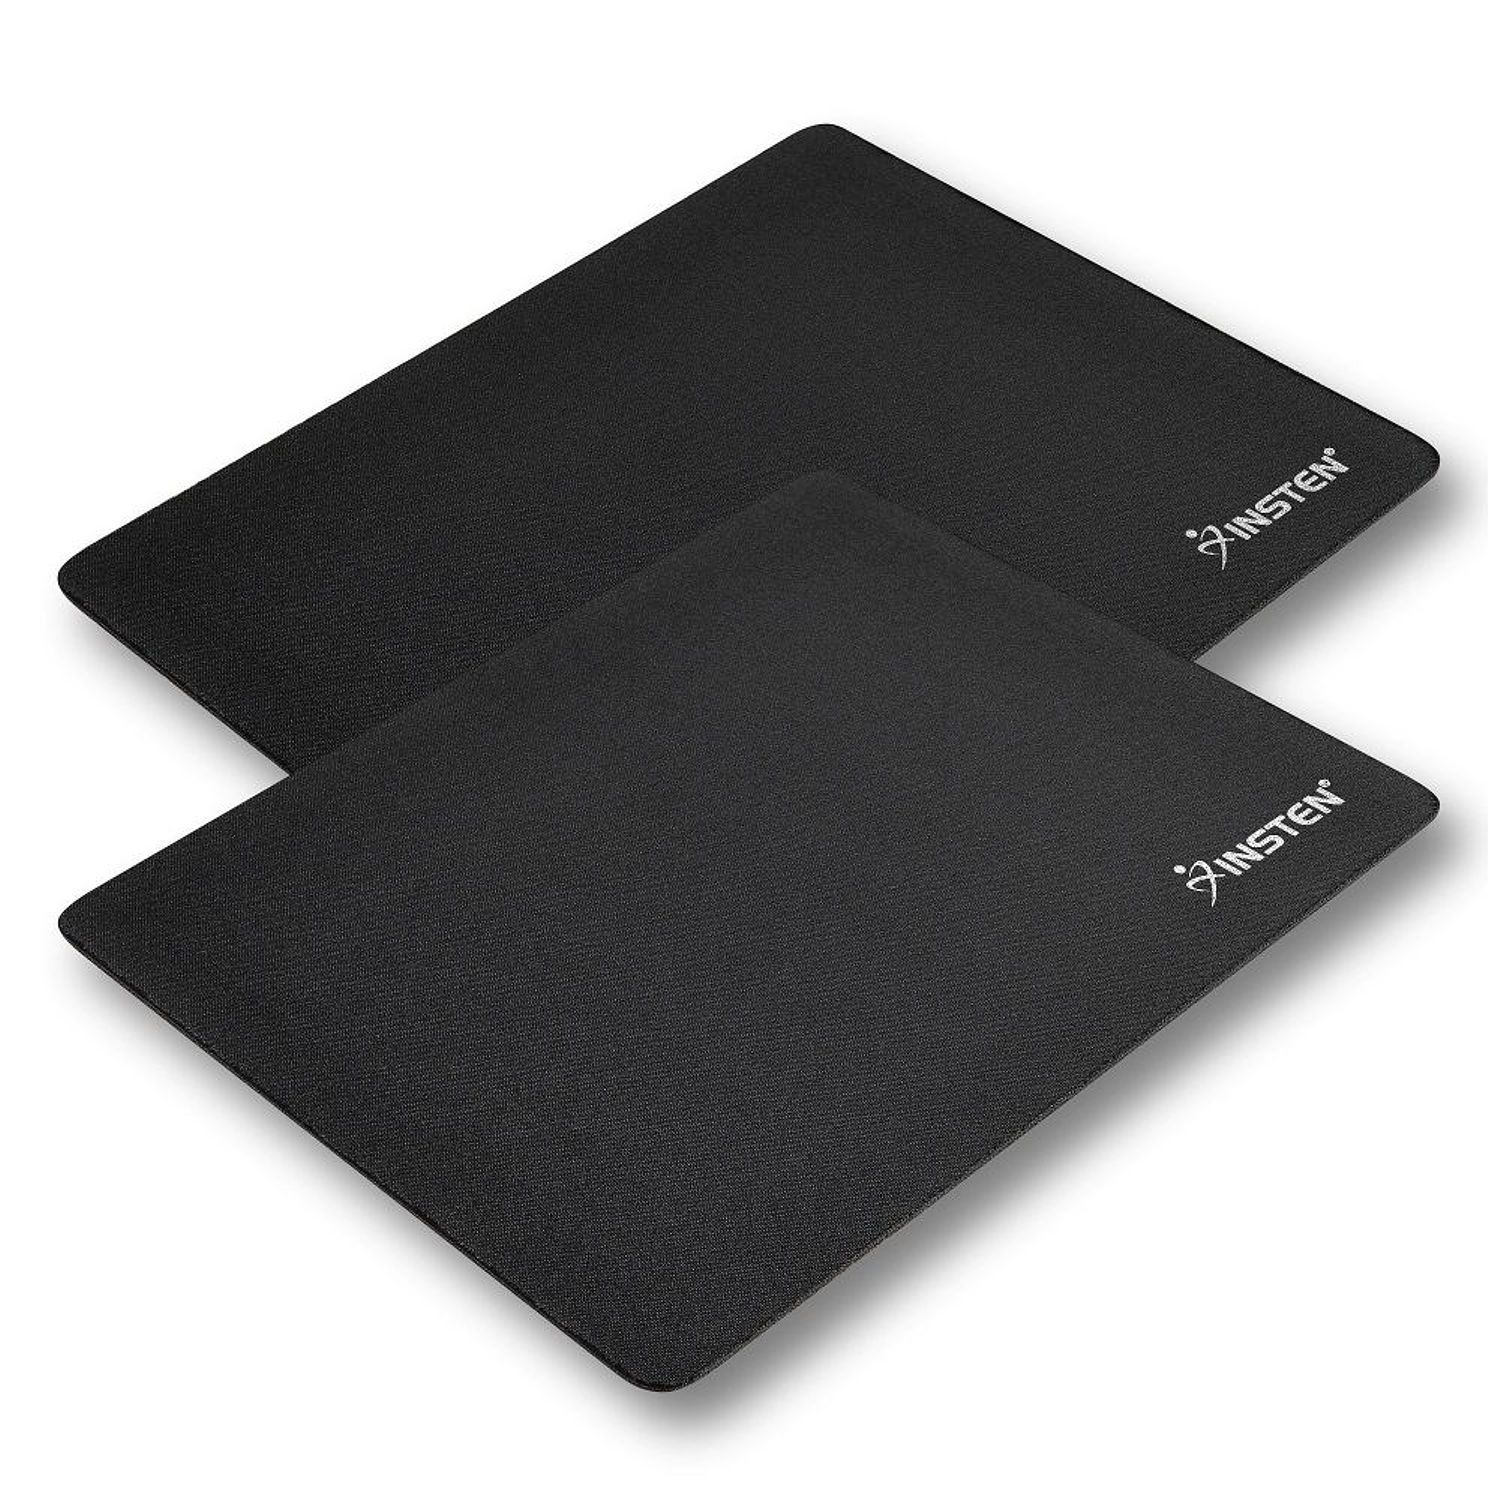 Insten 2-Piece Mouse Pad for Computer Desk Laptop Optical / Trackball Mouse Standard, Black